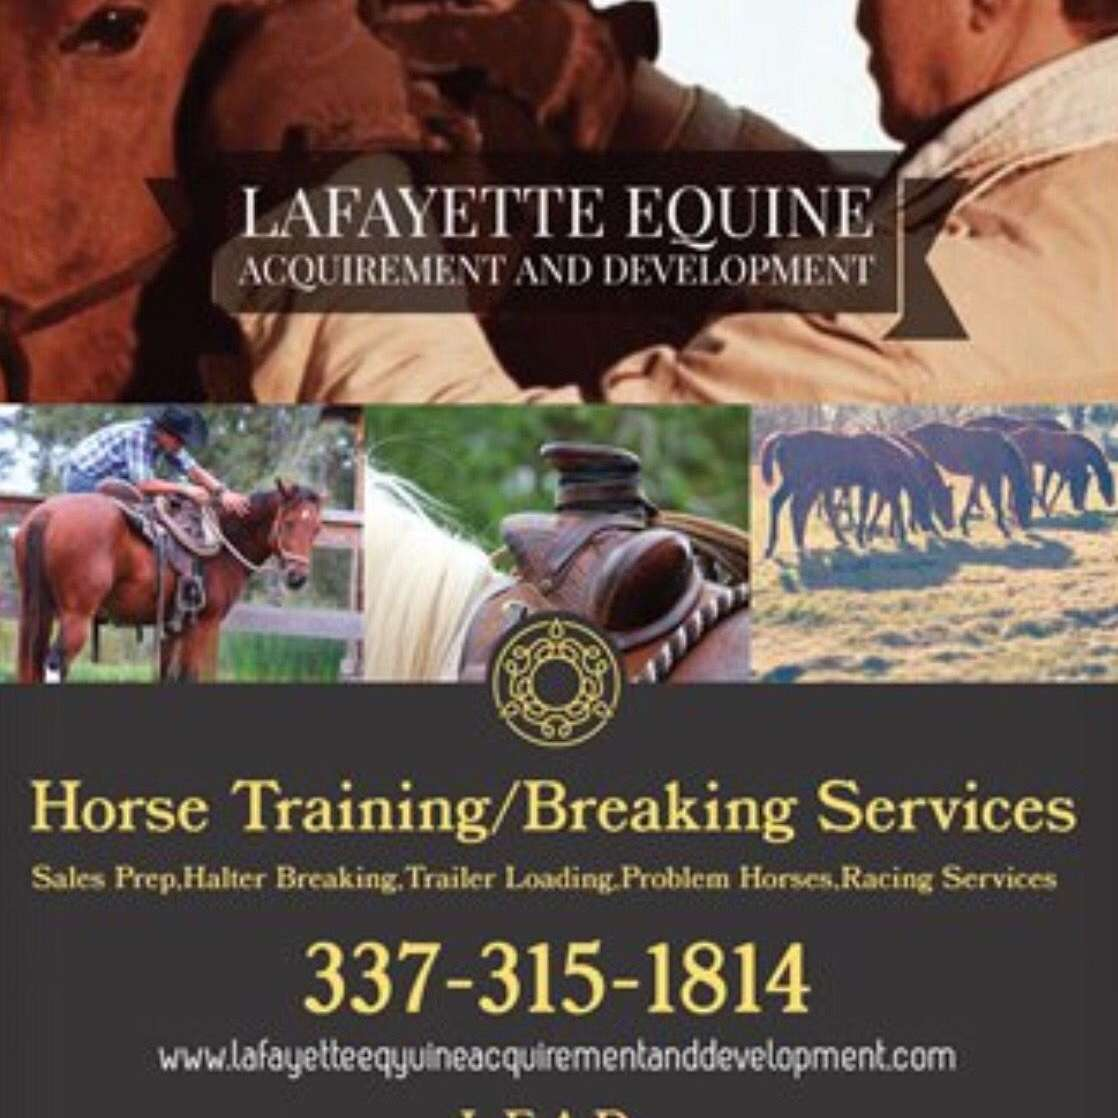 Lafayette Equine Acquirement and Development